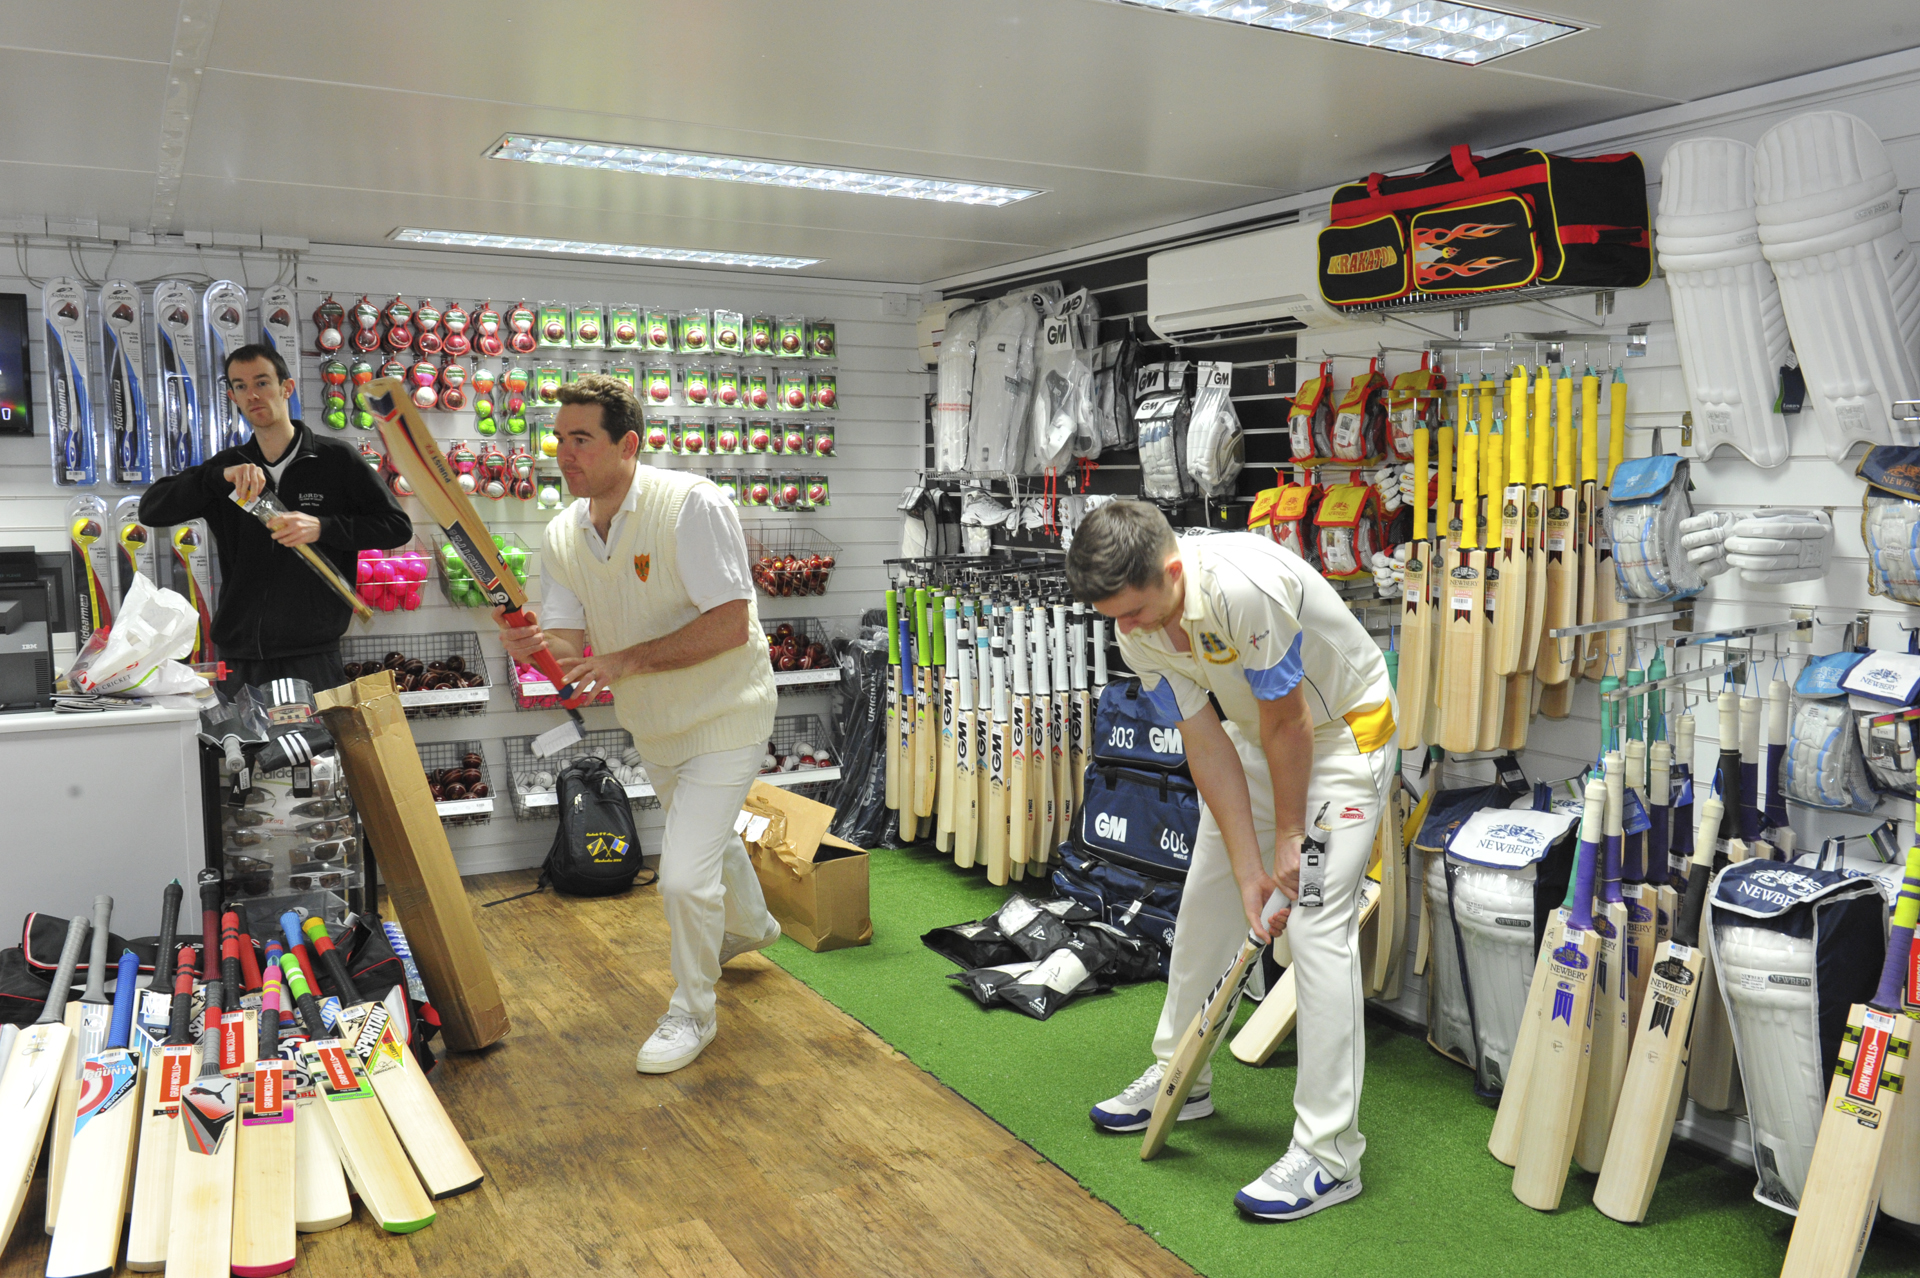 Editor of The Cricketer magazine Andrew Miller sizing up the bats in the Lords Cricket Store